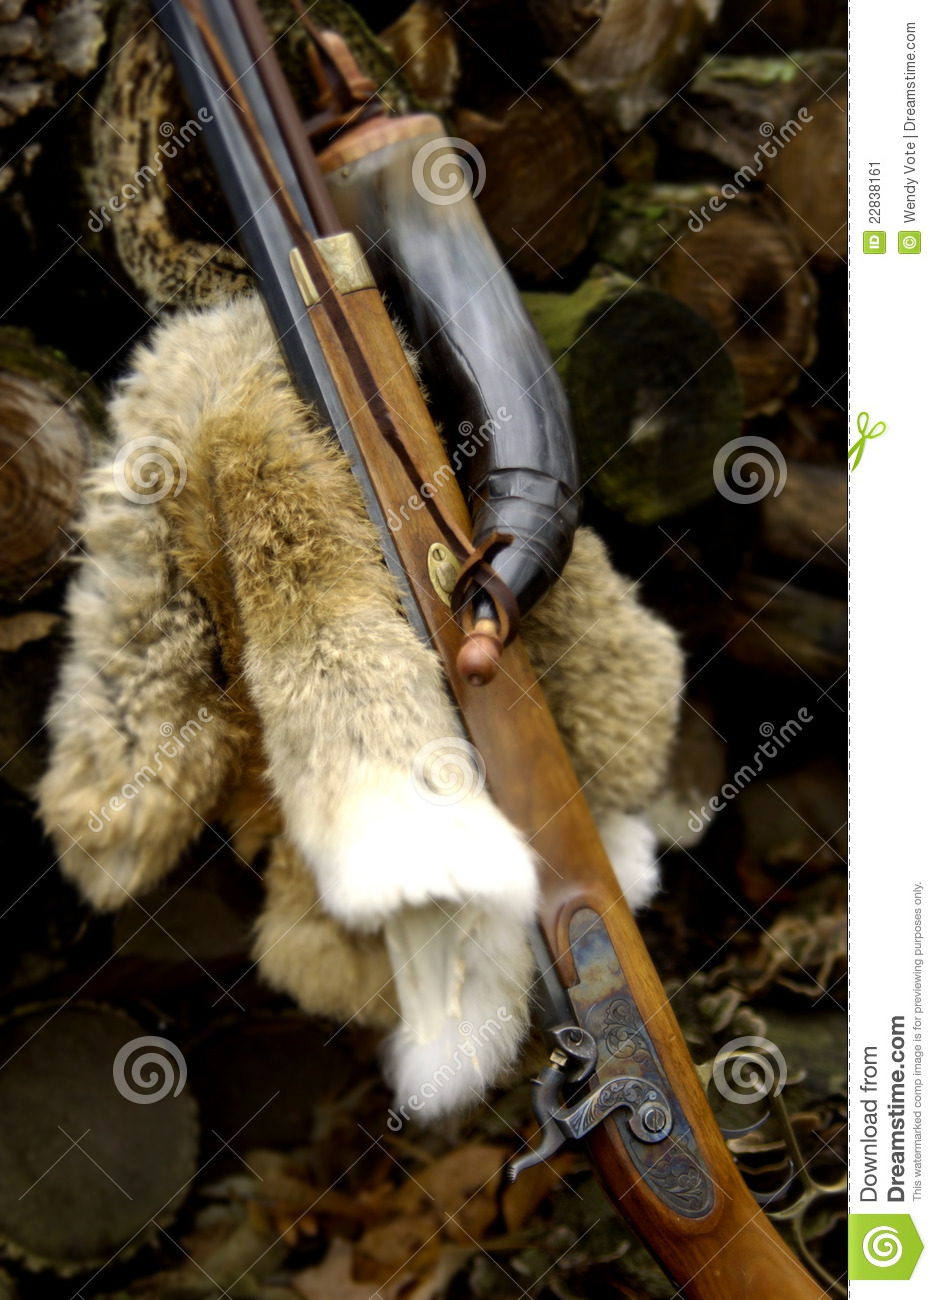 Muzzleloader With Powder Horn Stock Image - Image of battle